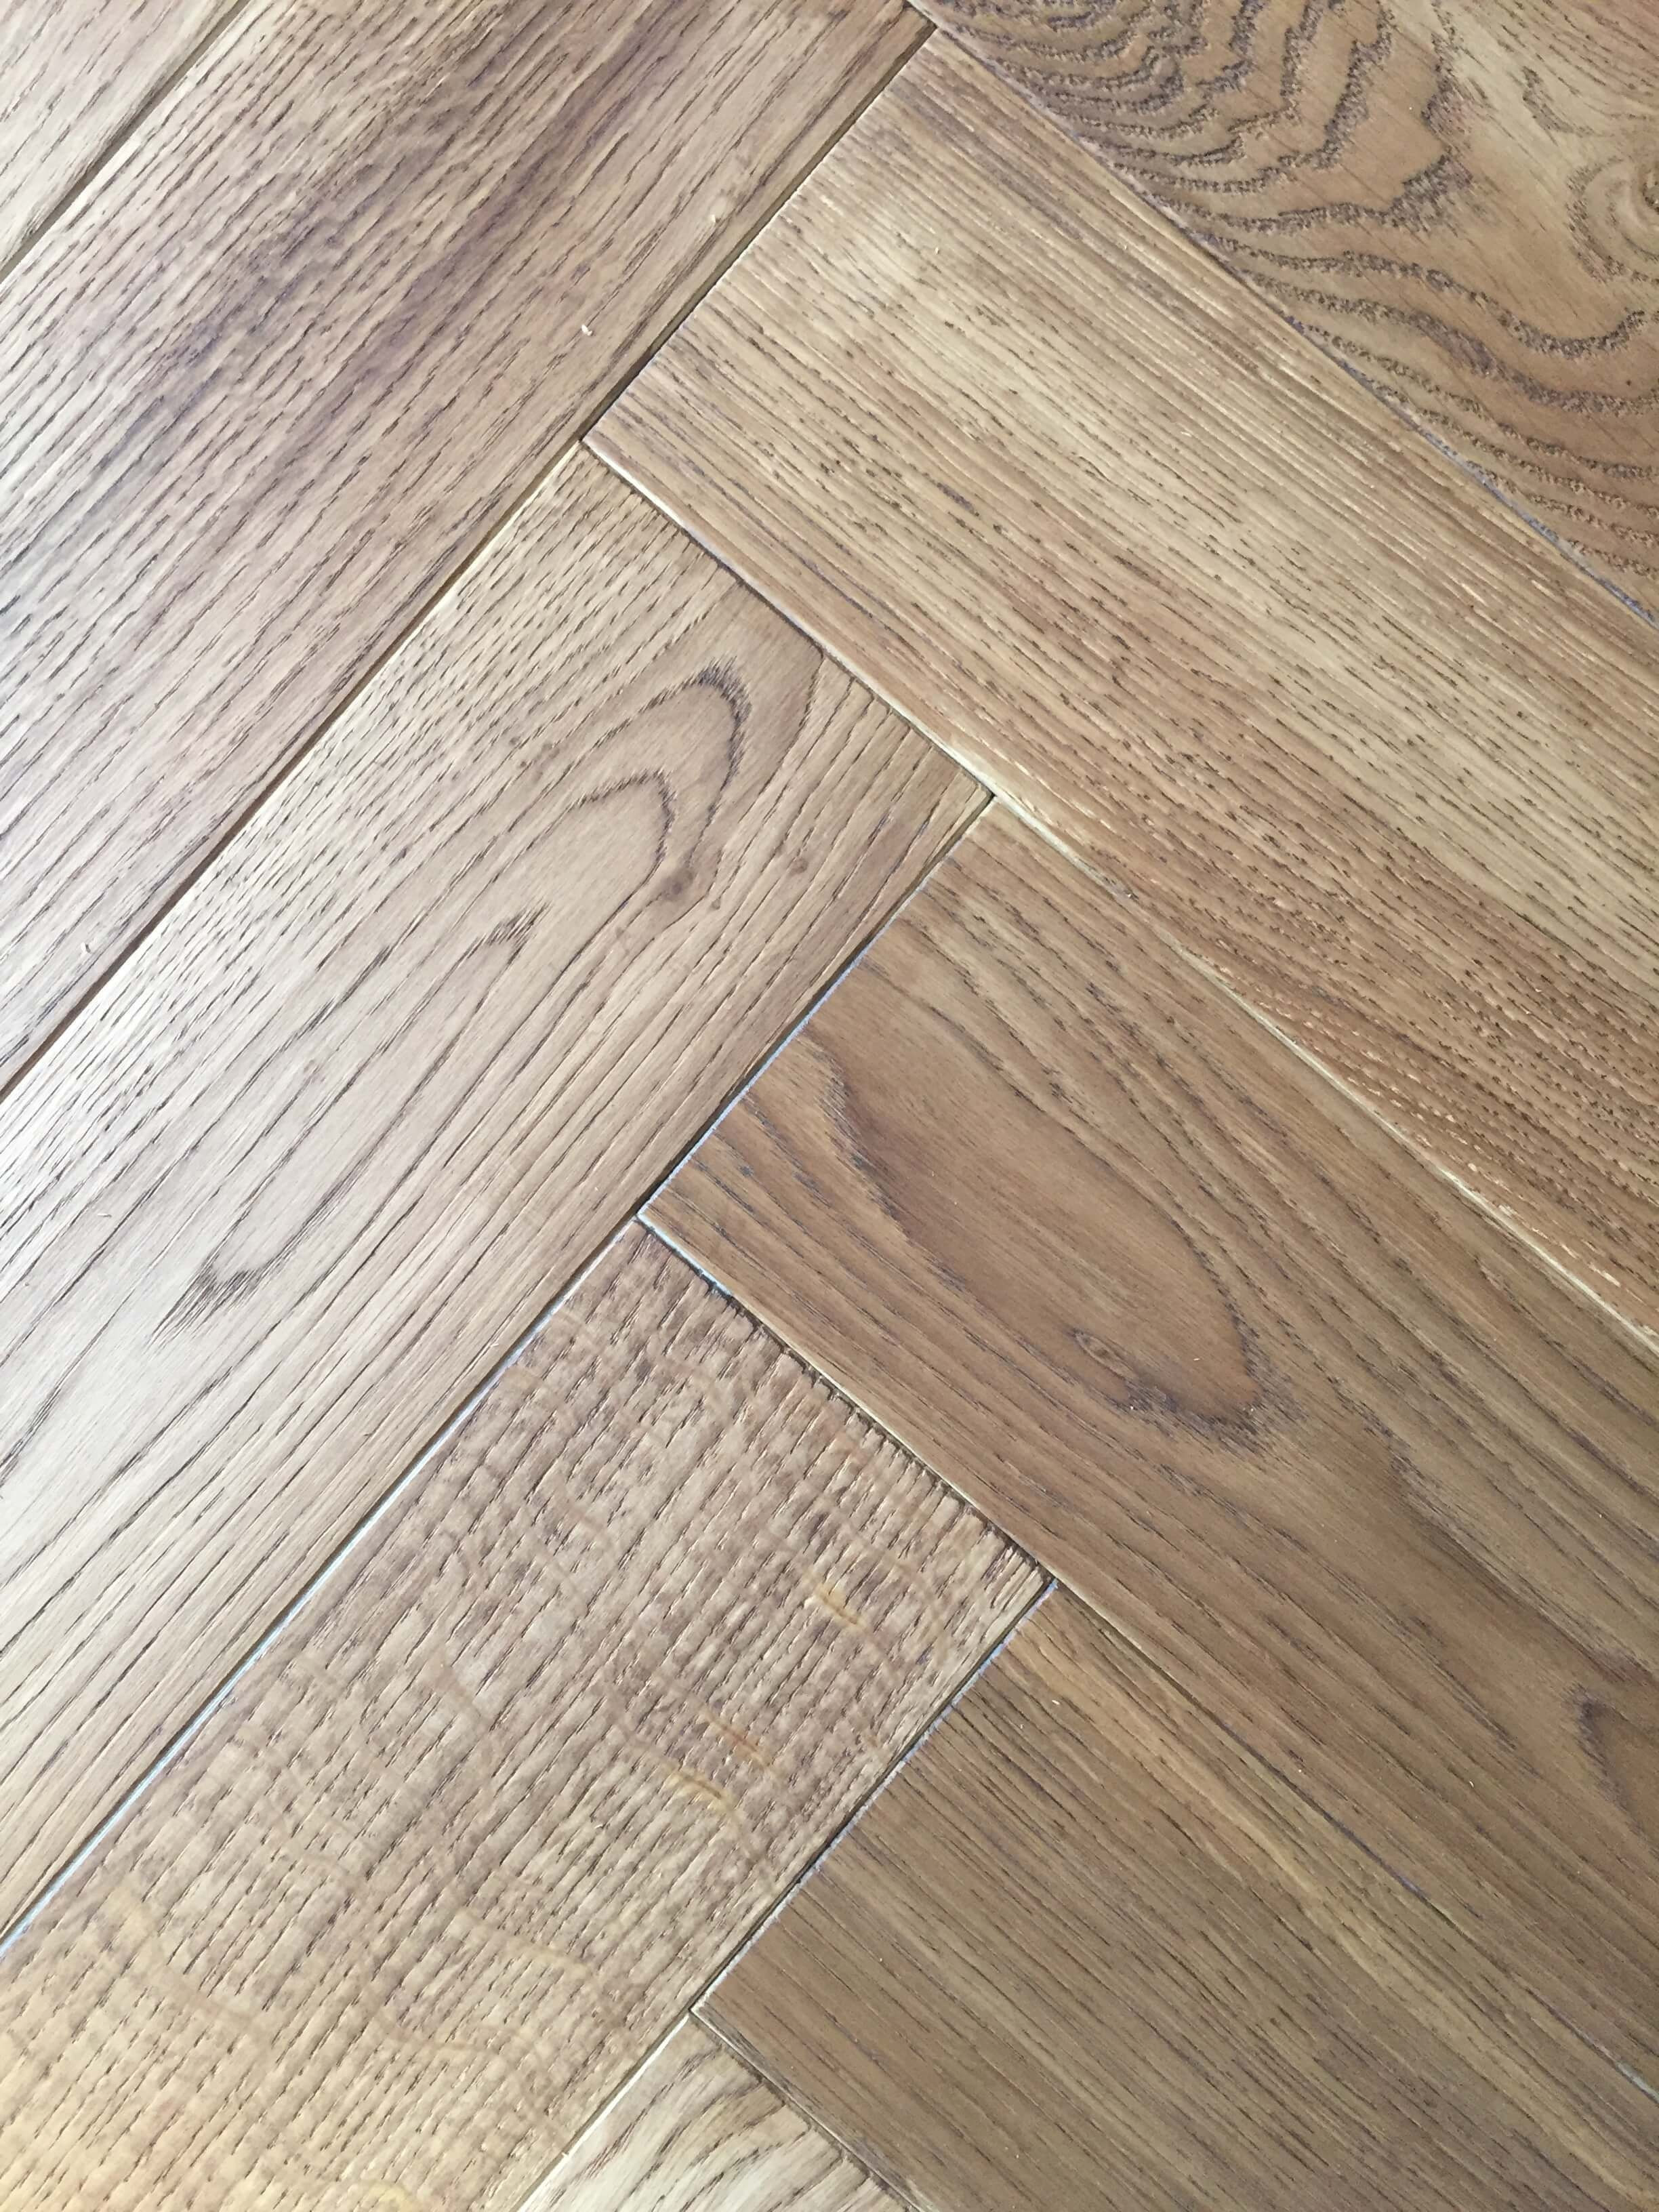 4 hickory hardwood flooring of handscraped engineered hardwood awesome engineered wood flooring with handscraped engineered hardwood awesome engineered wood flooring brown maple hand scraped engineered images